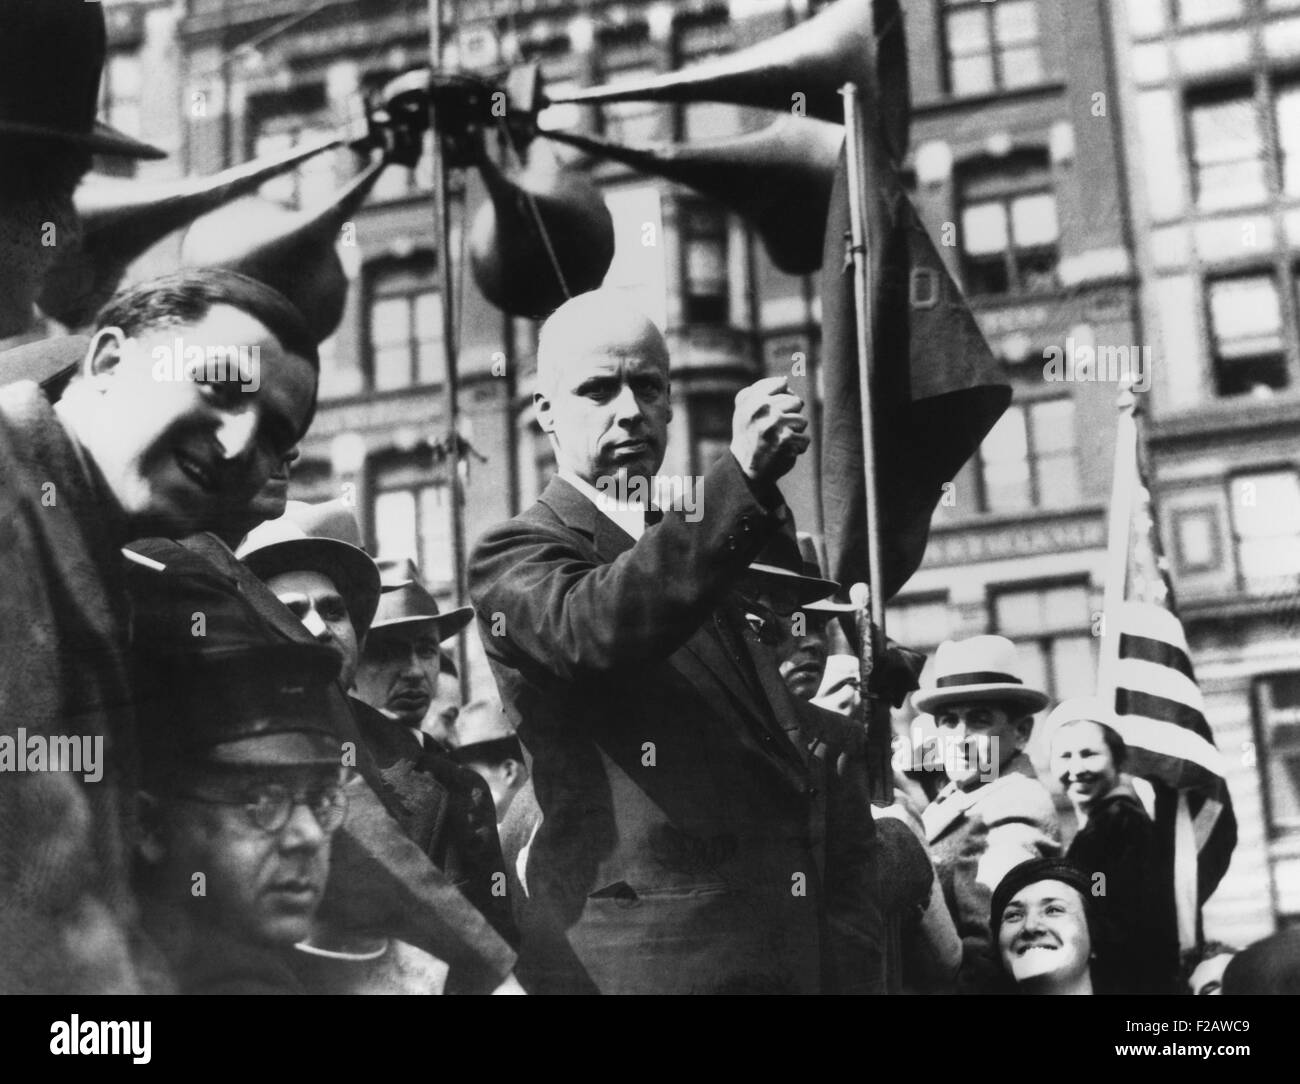 Socialist Norman Thomas (center) speaking in New York's Union Square on May Day 1931. (CSU_2015_11_1412) - Stock Image